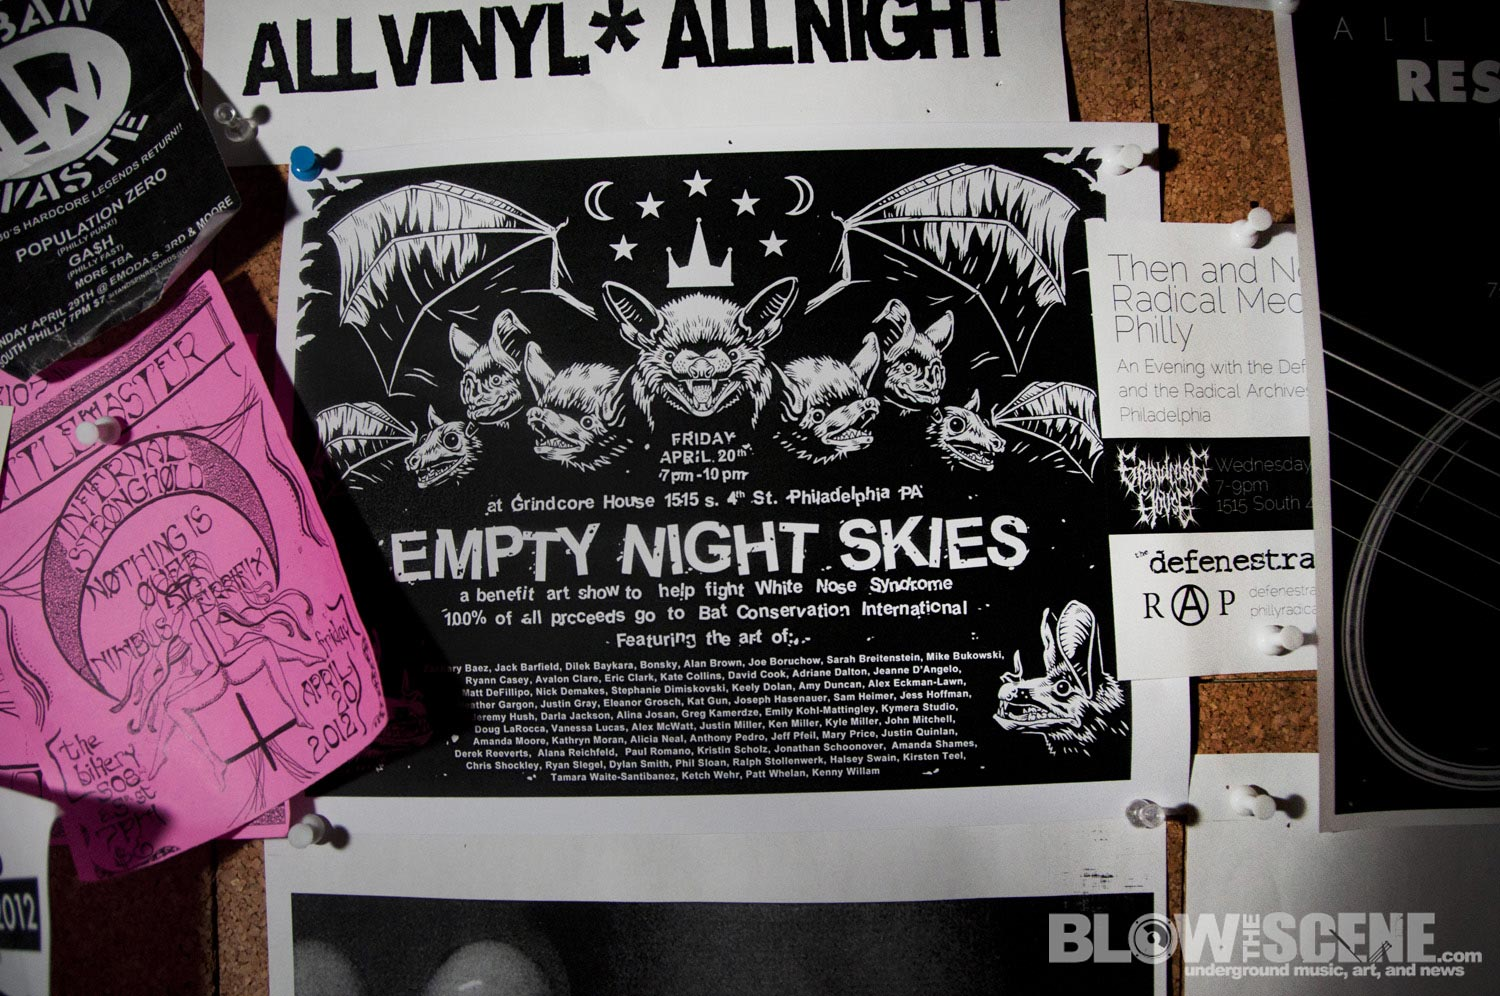 Empty Night Skies - Art Show Benefit For Bats - Grindcore House